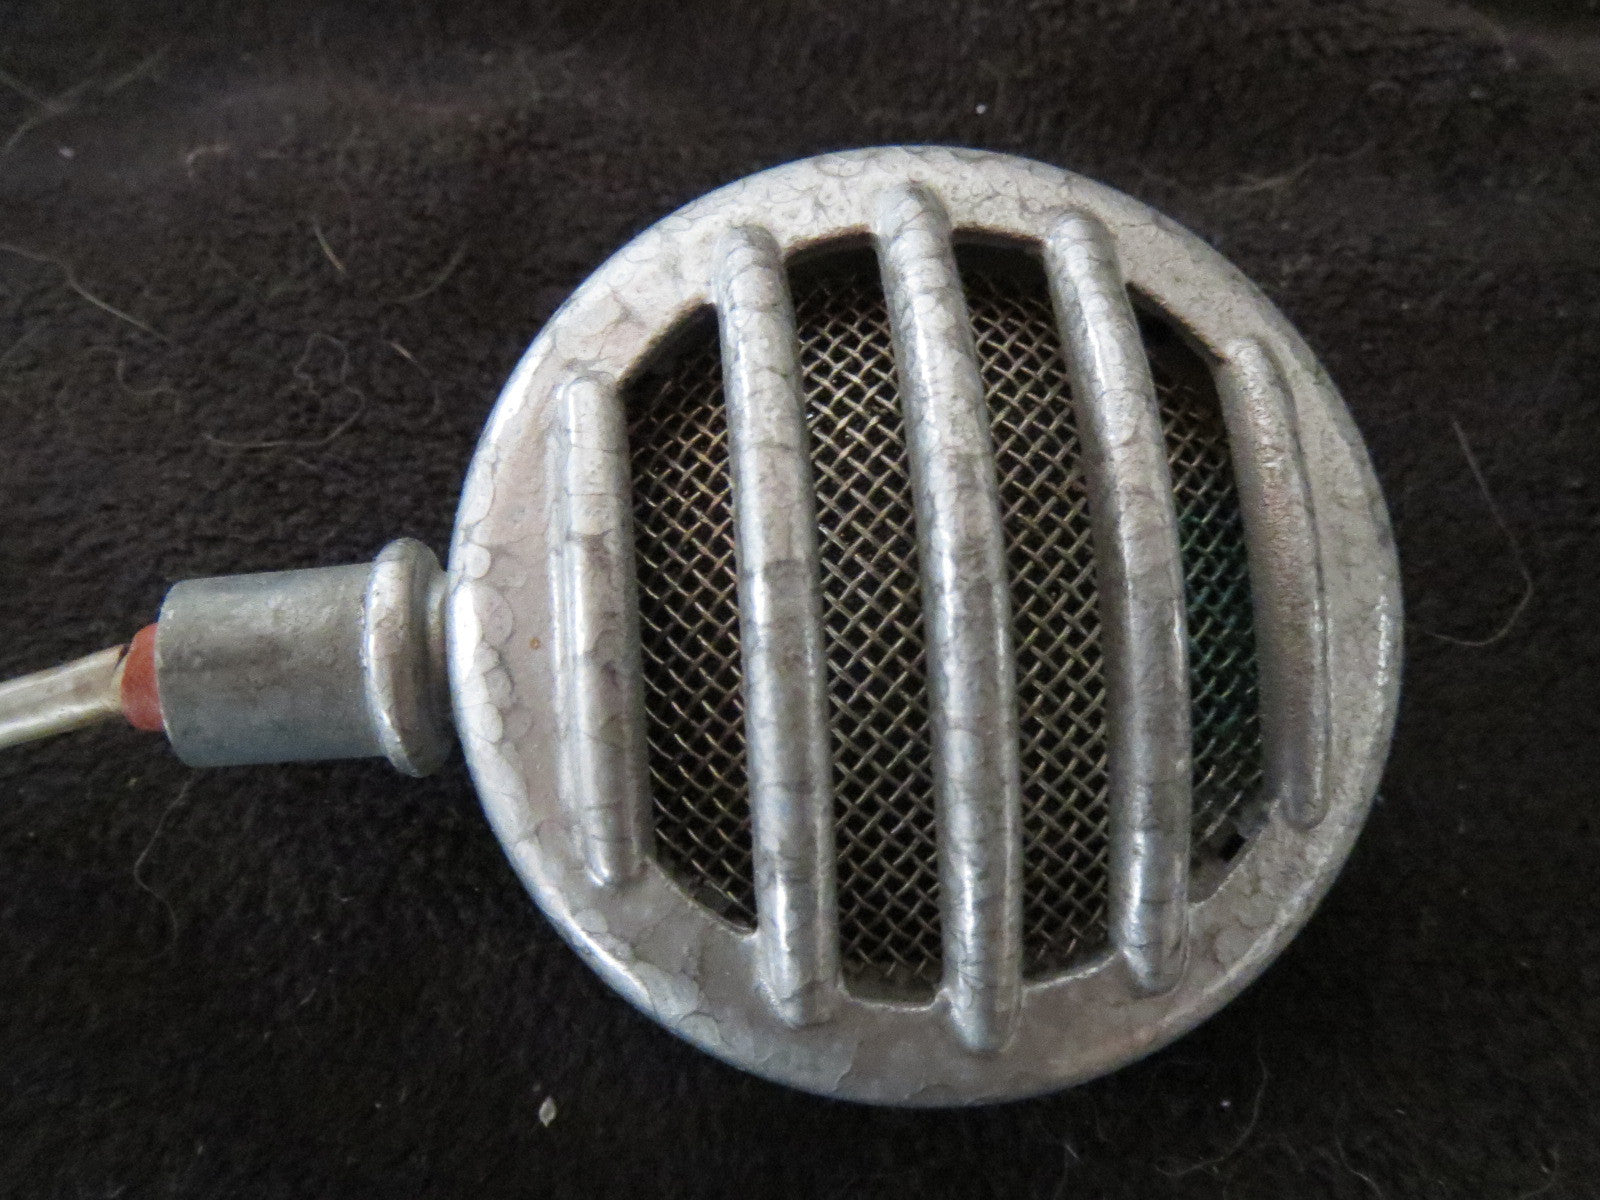 FUNKWERK LEIPZIG KM7055 RARE VINTAGE CRYSTAL MICROPHONE WITH ATTACHED CABLE